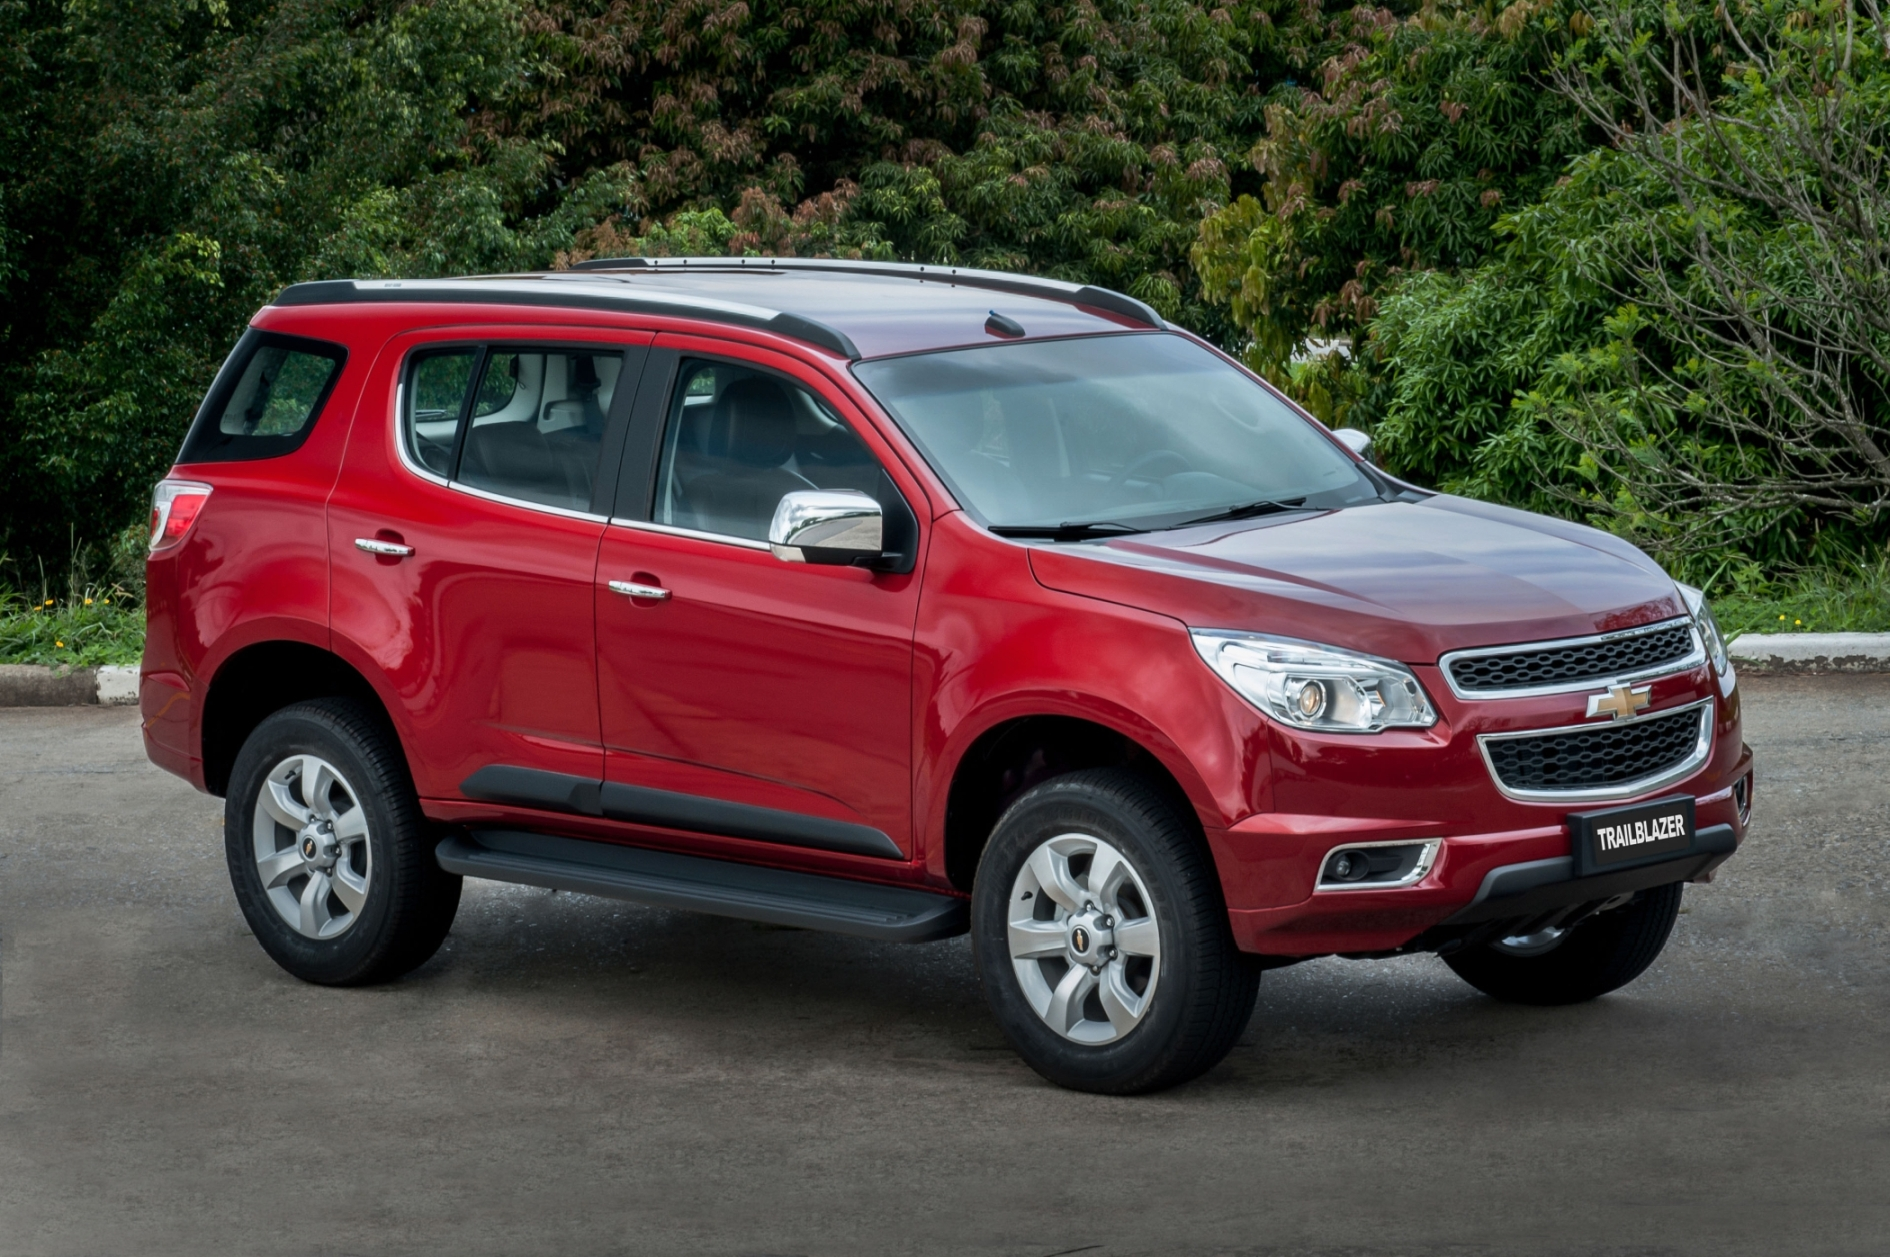 GM Brazil Chevrolet Trailblazer 2016 001